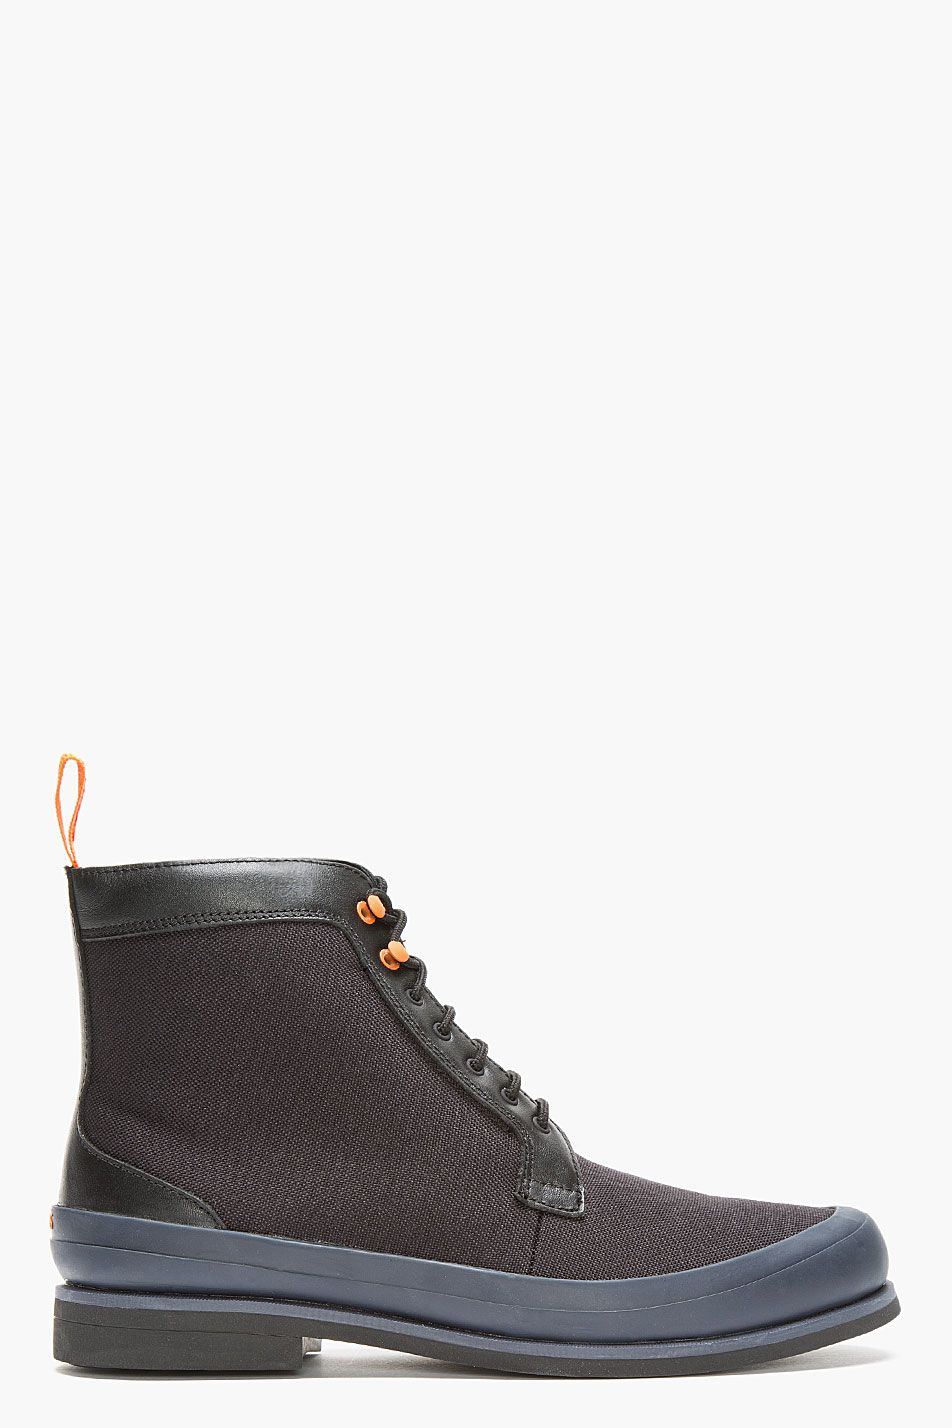 Swims Brown Blue Rubber Trimmed Harry Boots Boots Men Sneakers Men Boots